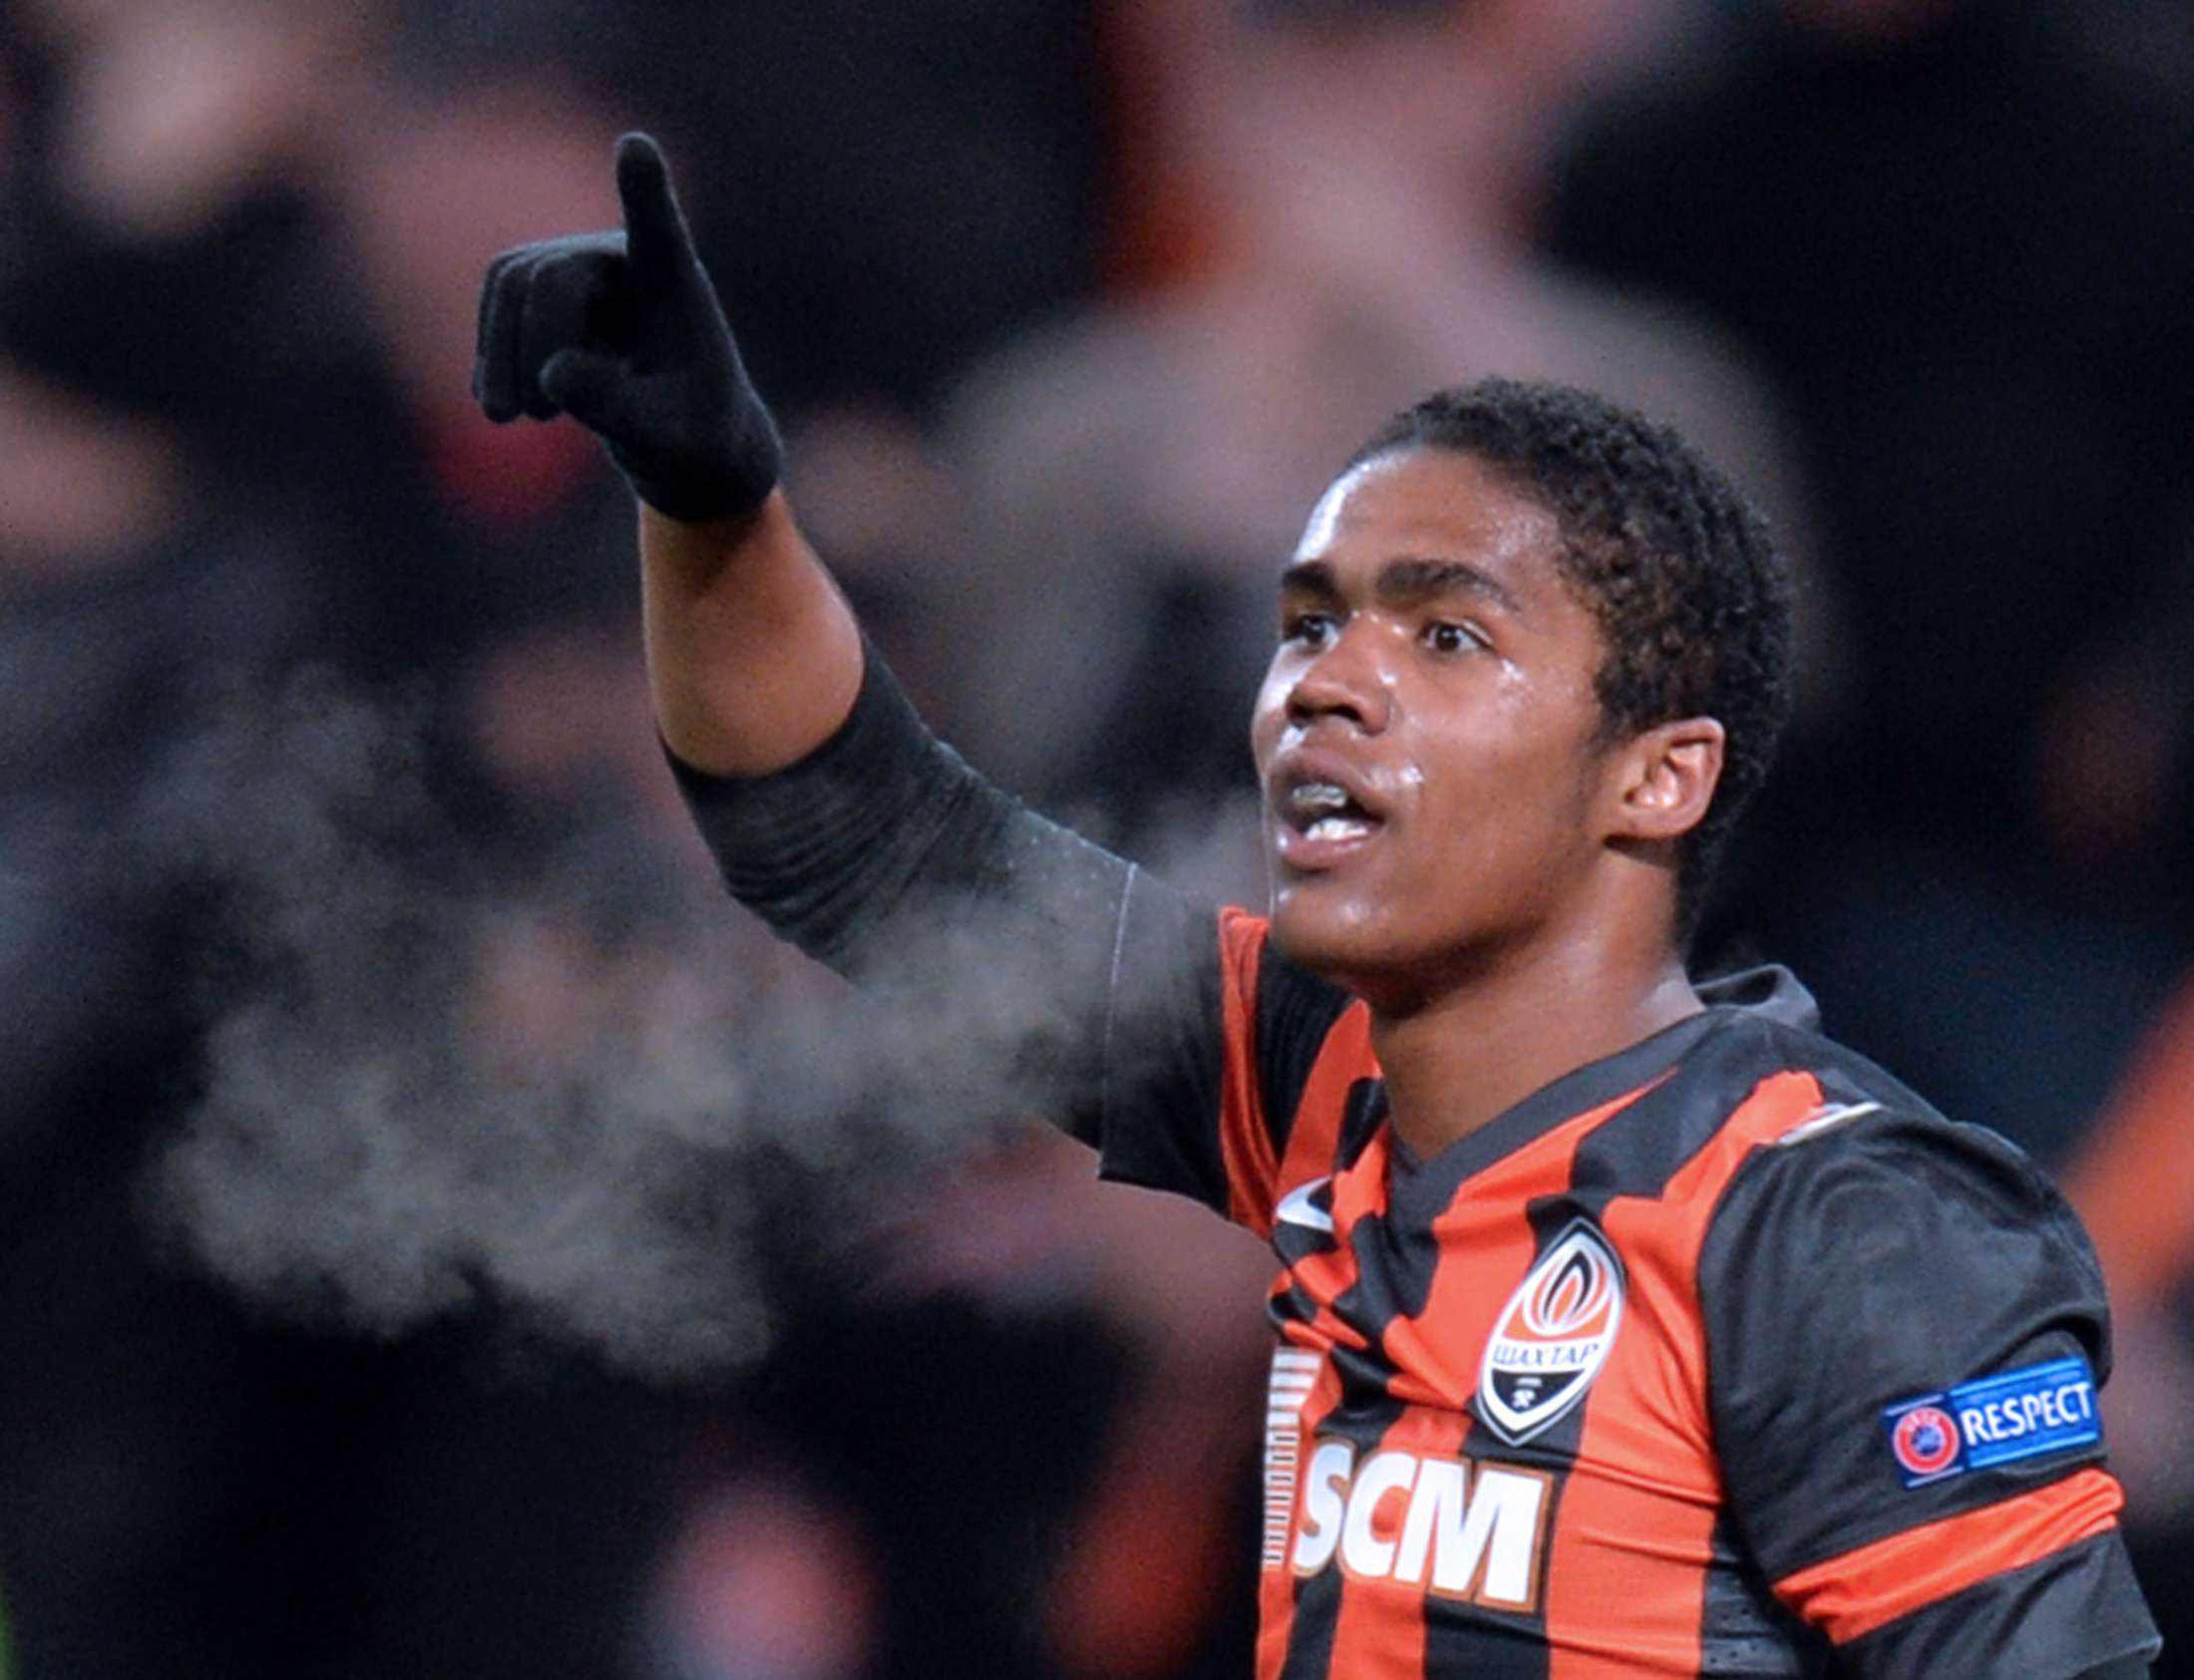 Shakhtar midfielder says players' lives are at risk